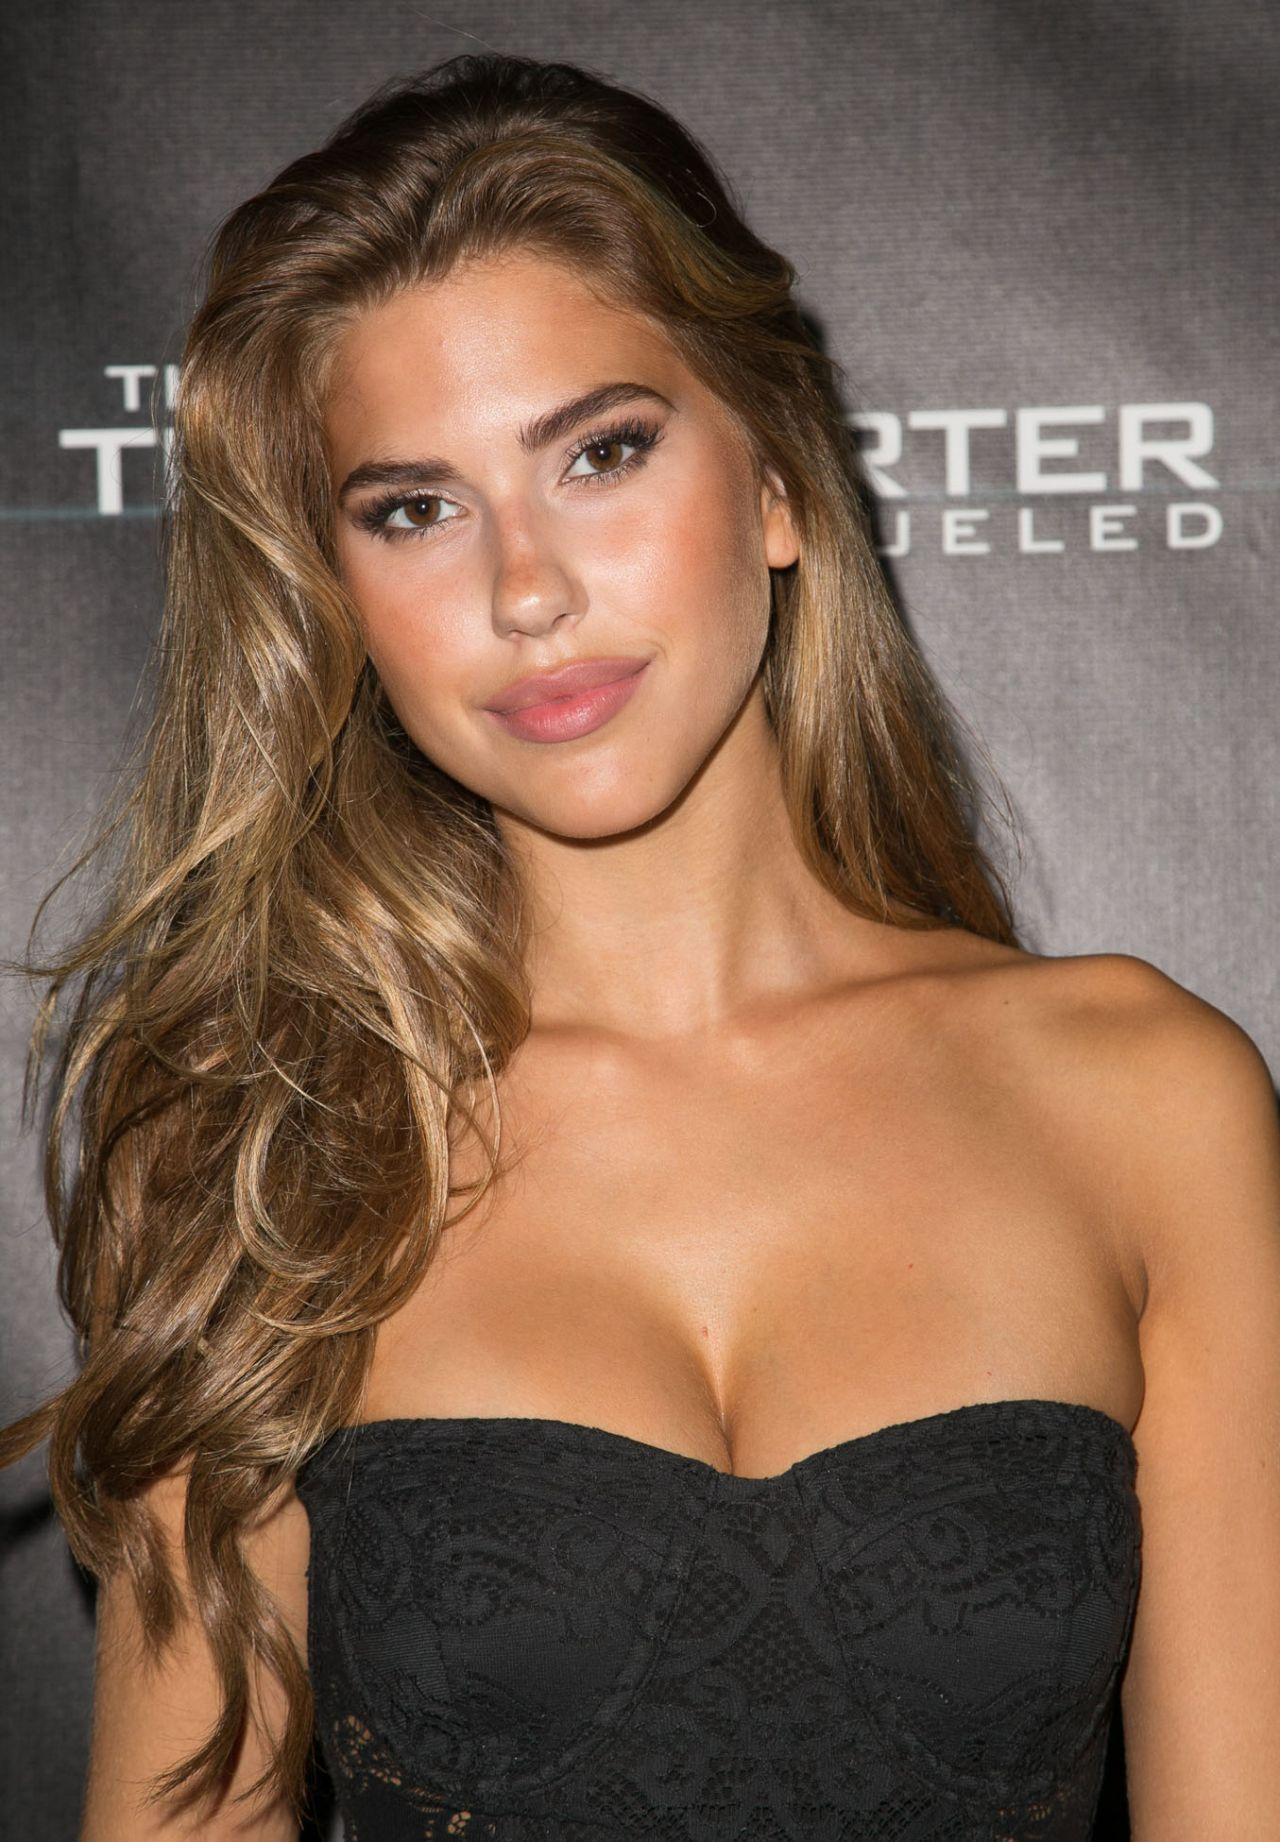 Cleavage Kara Del Toro naked (64 foto and video), Pussy, Leaked, Feet, butt 2018